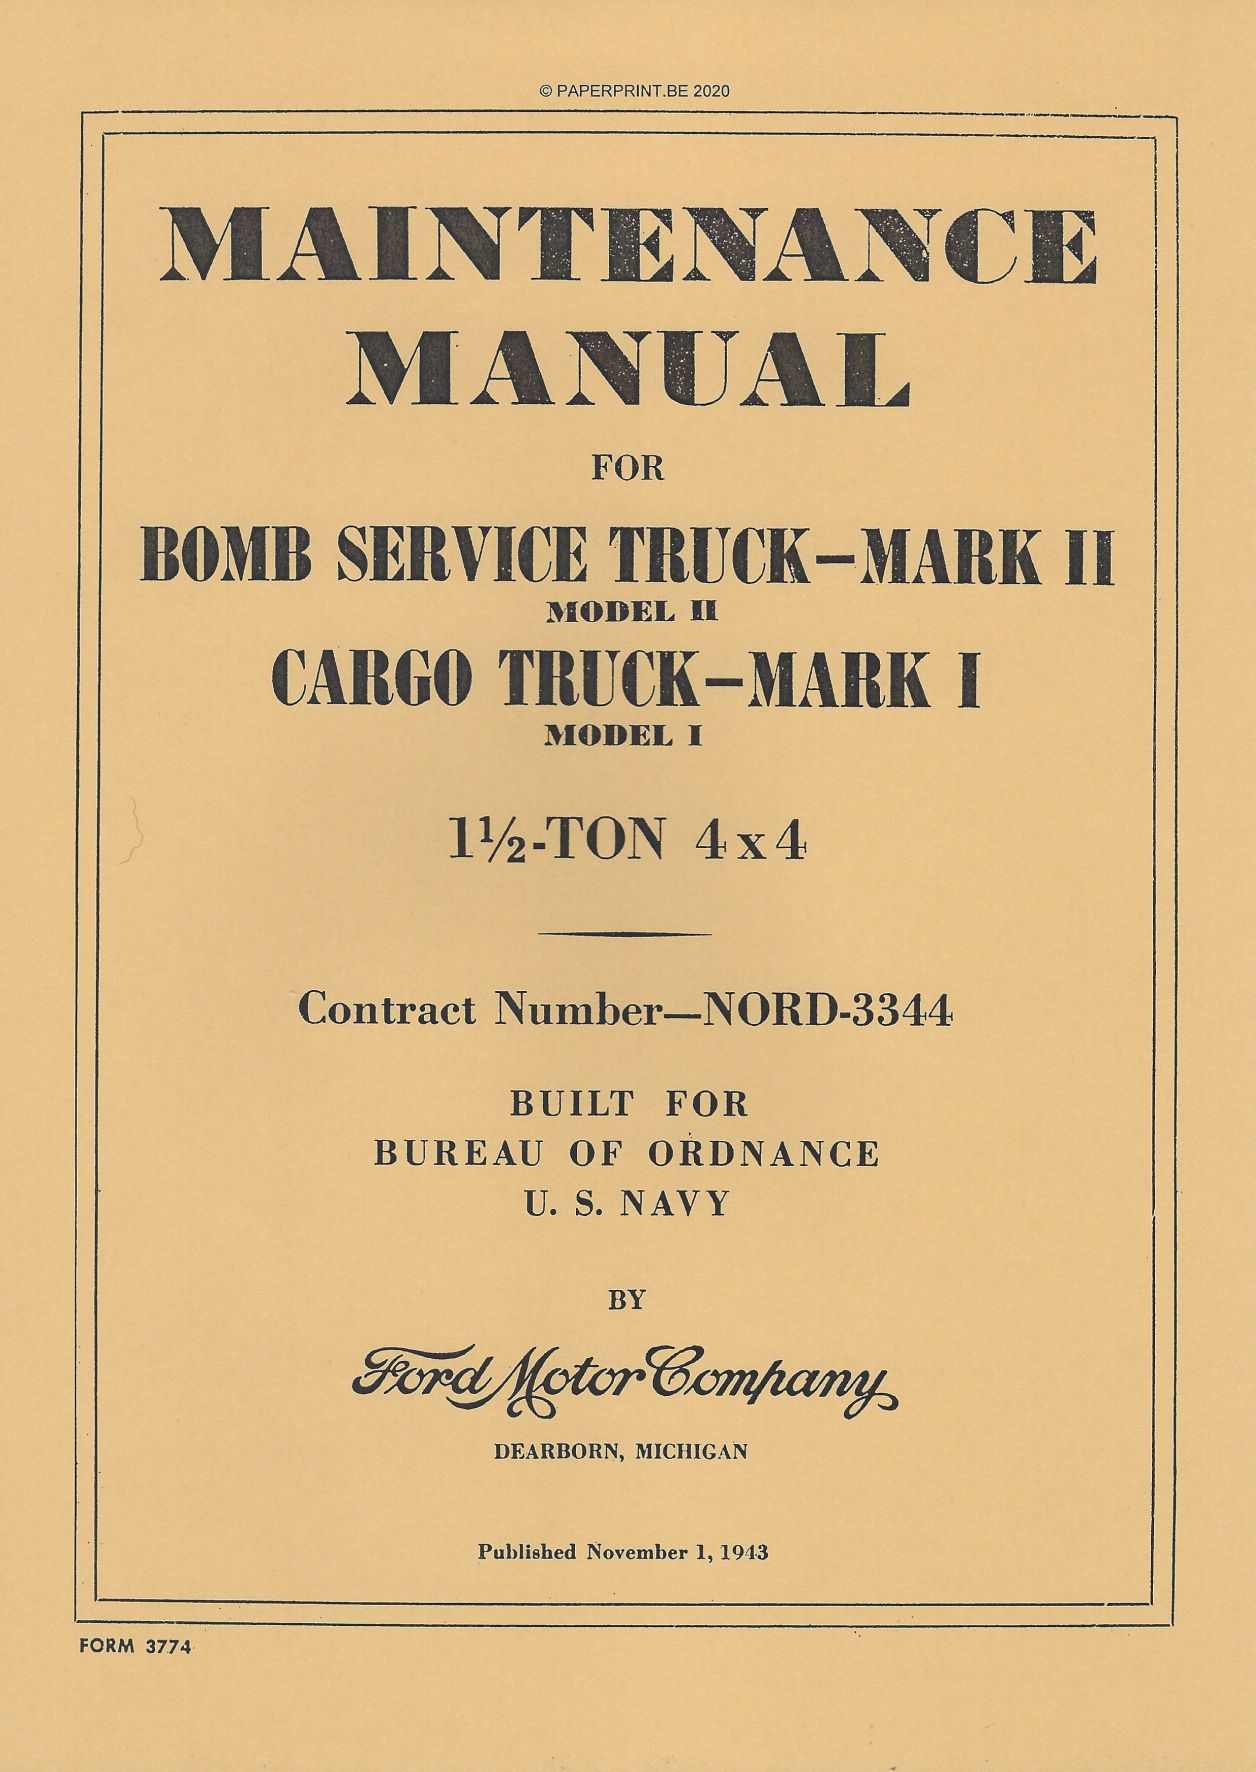 BOMB SERVICE TRUCK MARK II AND CARGO TRUCK MARK I MAINTENANCE MANUAL US